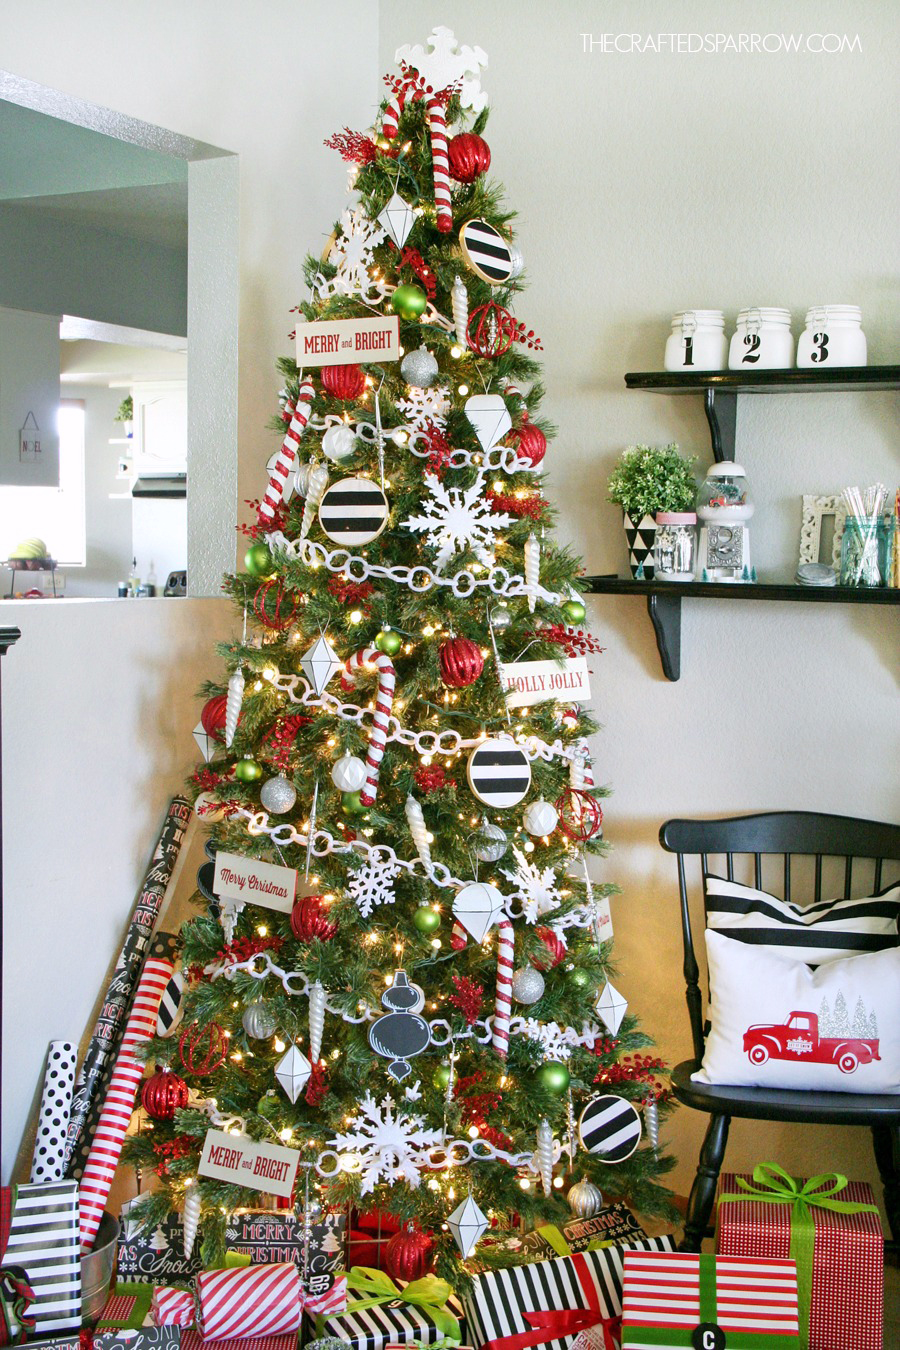 vintage inspired christmas tree - Christmas Tree Decorated With Vintage Ornaments